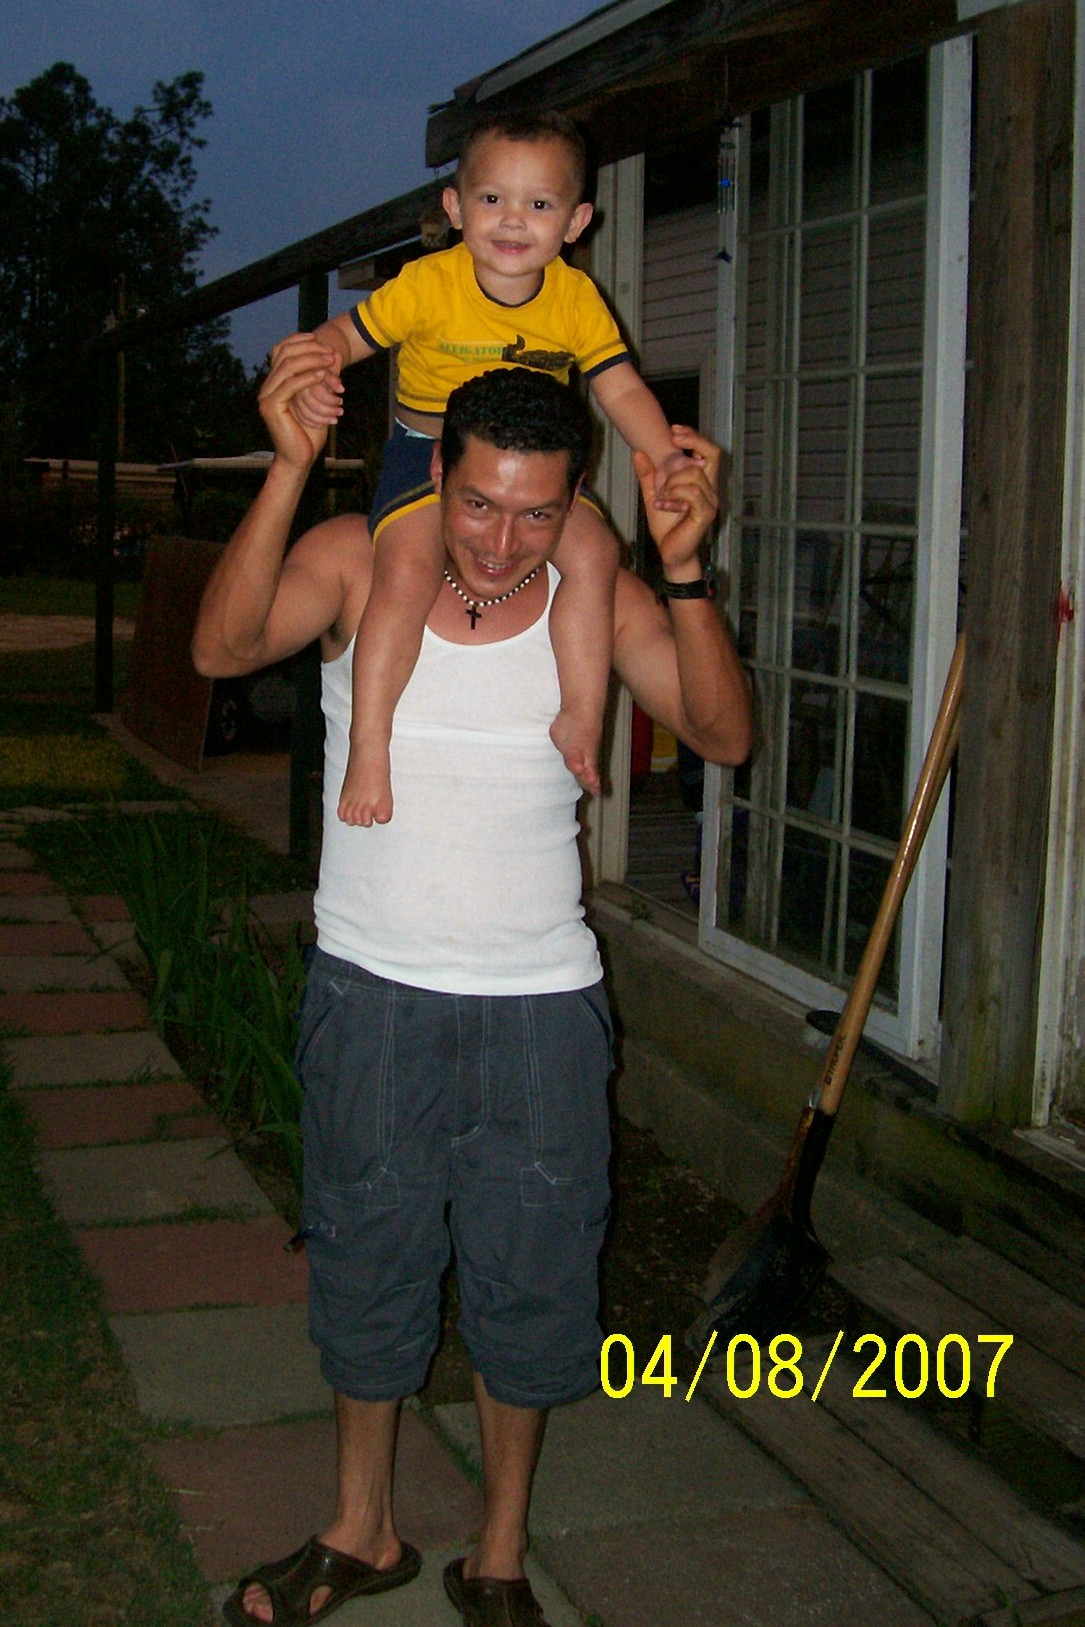 Jose and his nephew